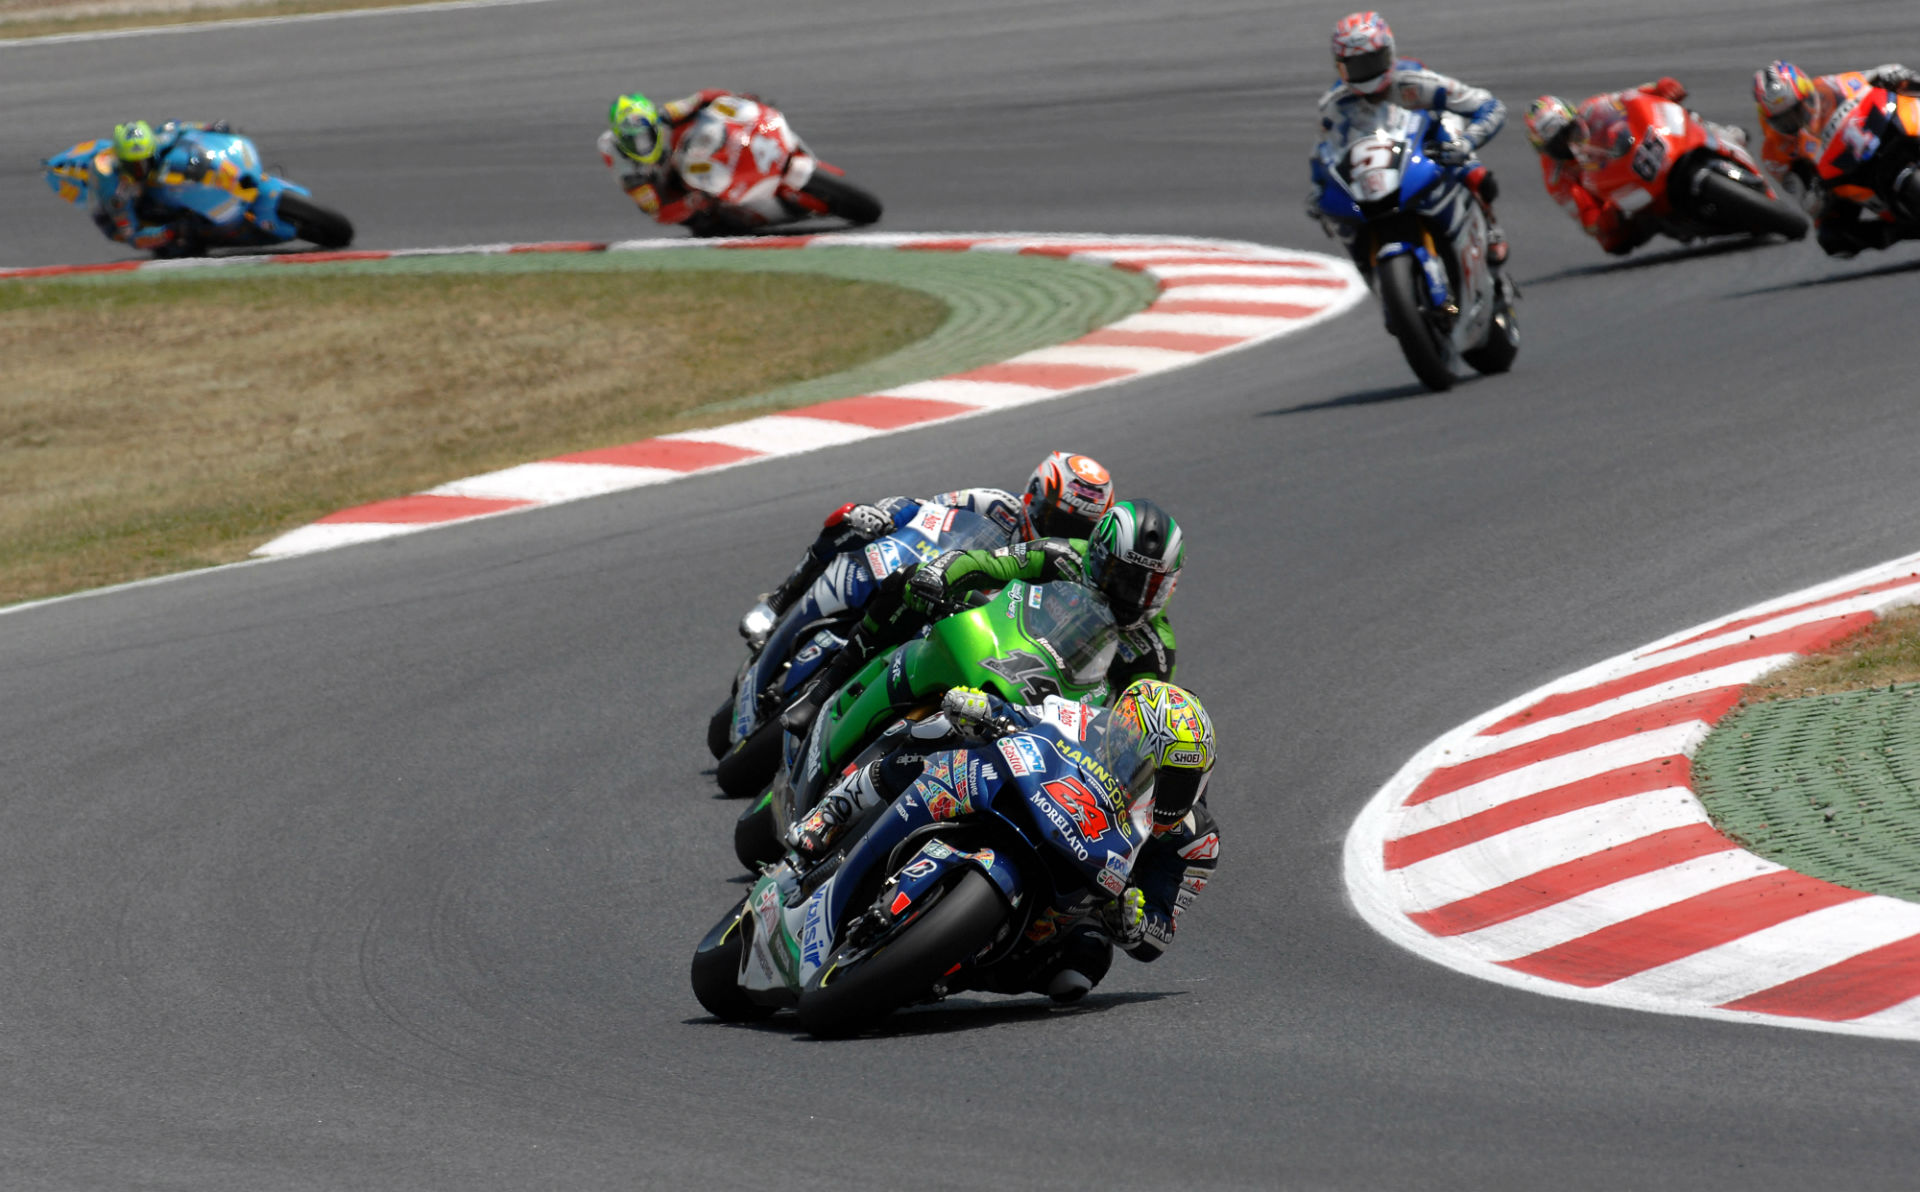 Motorcycle racing wallpapers pictures images - Superbike wallpaper ...